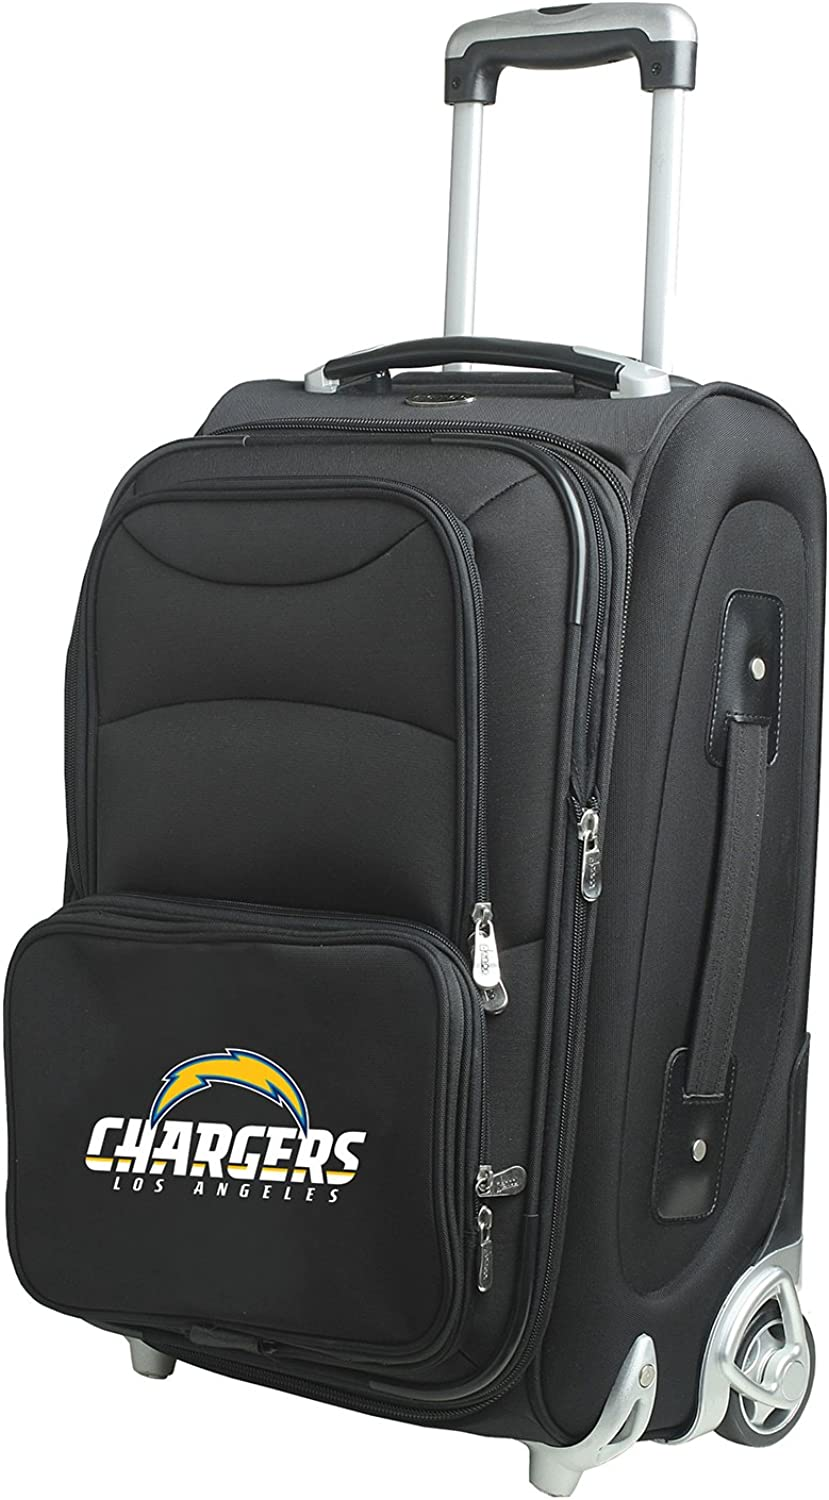 NFL UnisexAdult NFL 21inch CarryOn